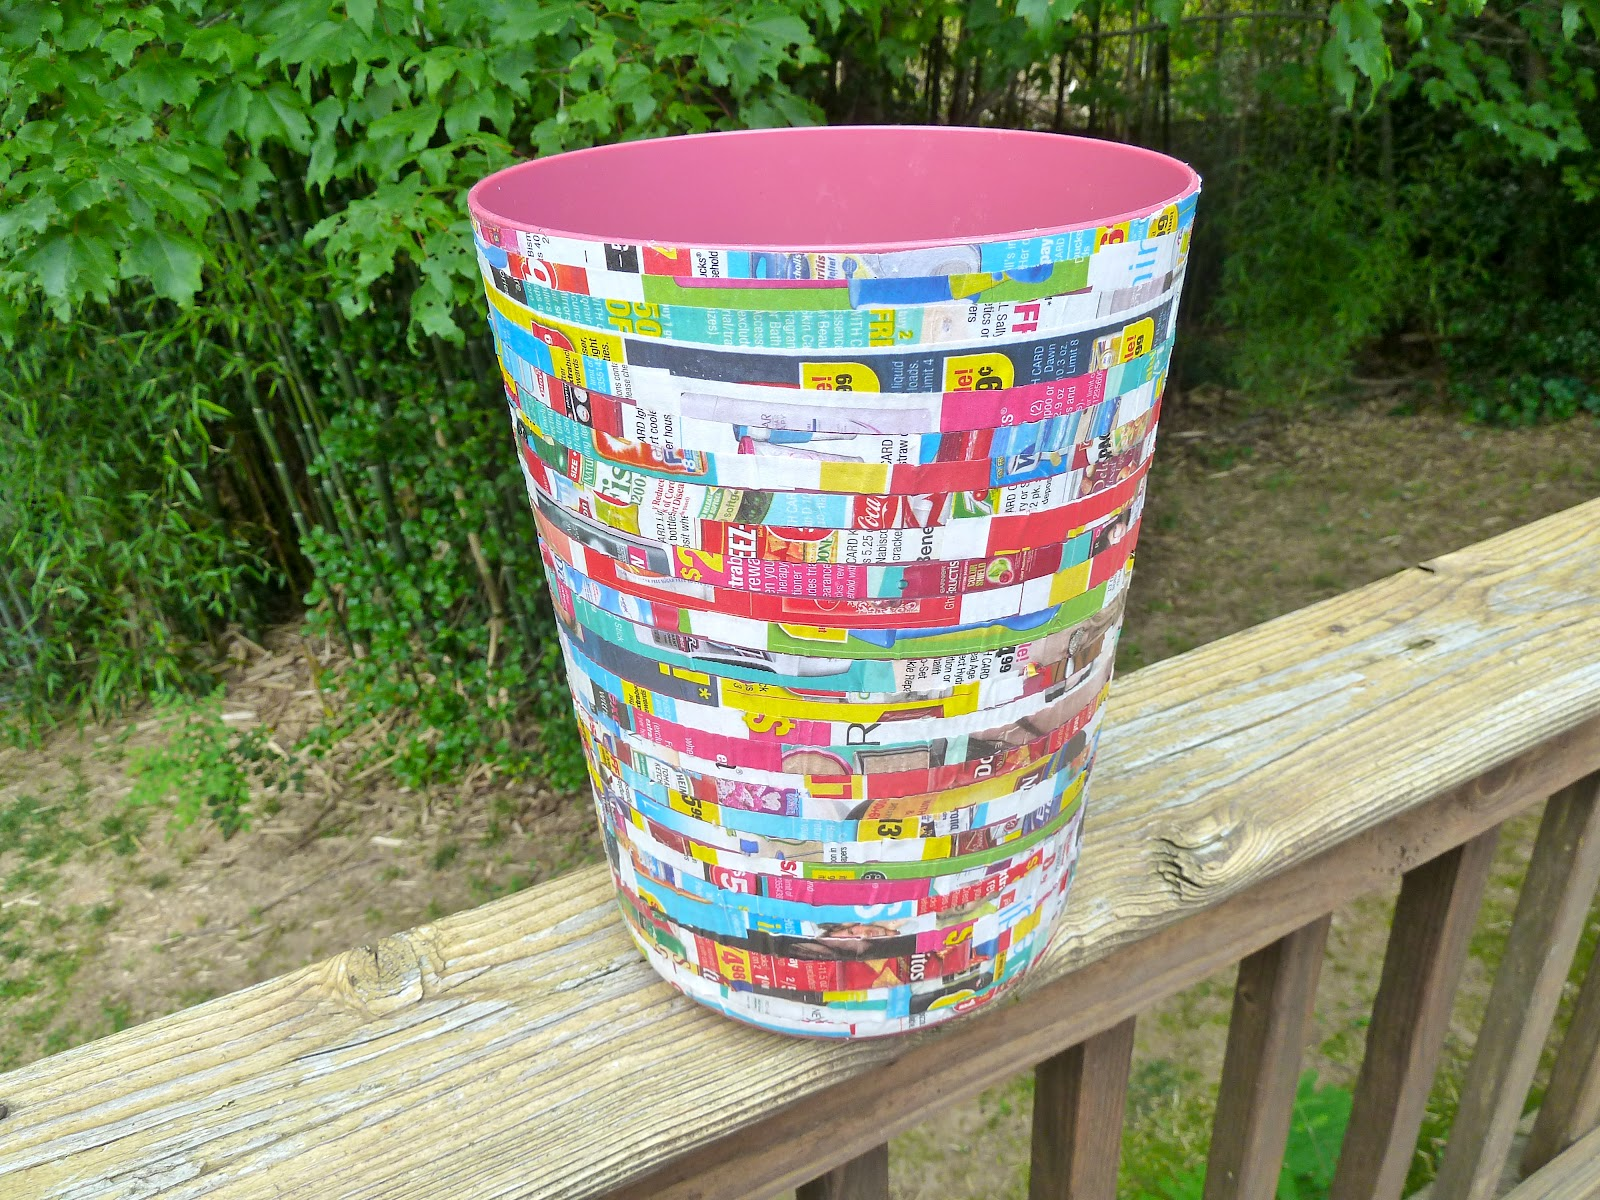 Make it easy crafts recycled waste wastebasket for Waste crafts making